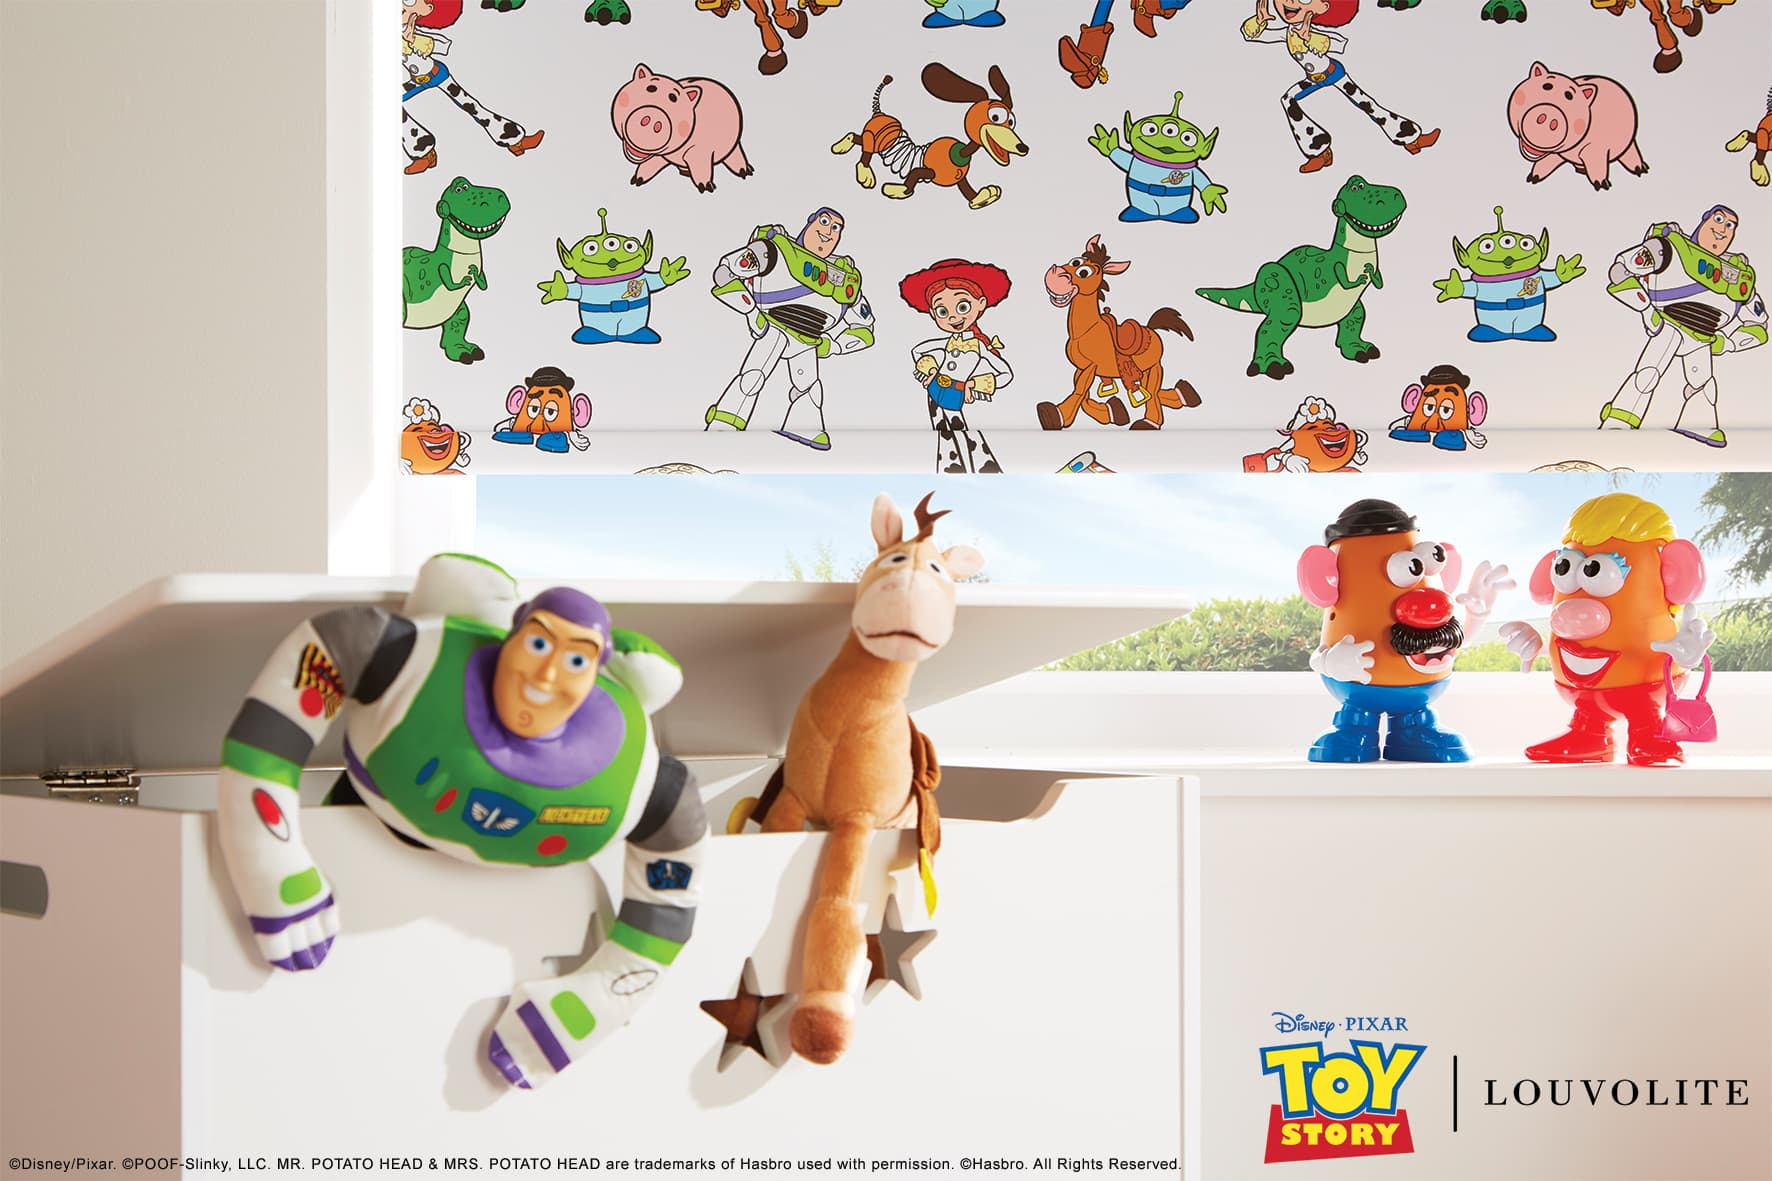 Disney Pixar Toy Story window blind, fabric by Louvolite